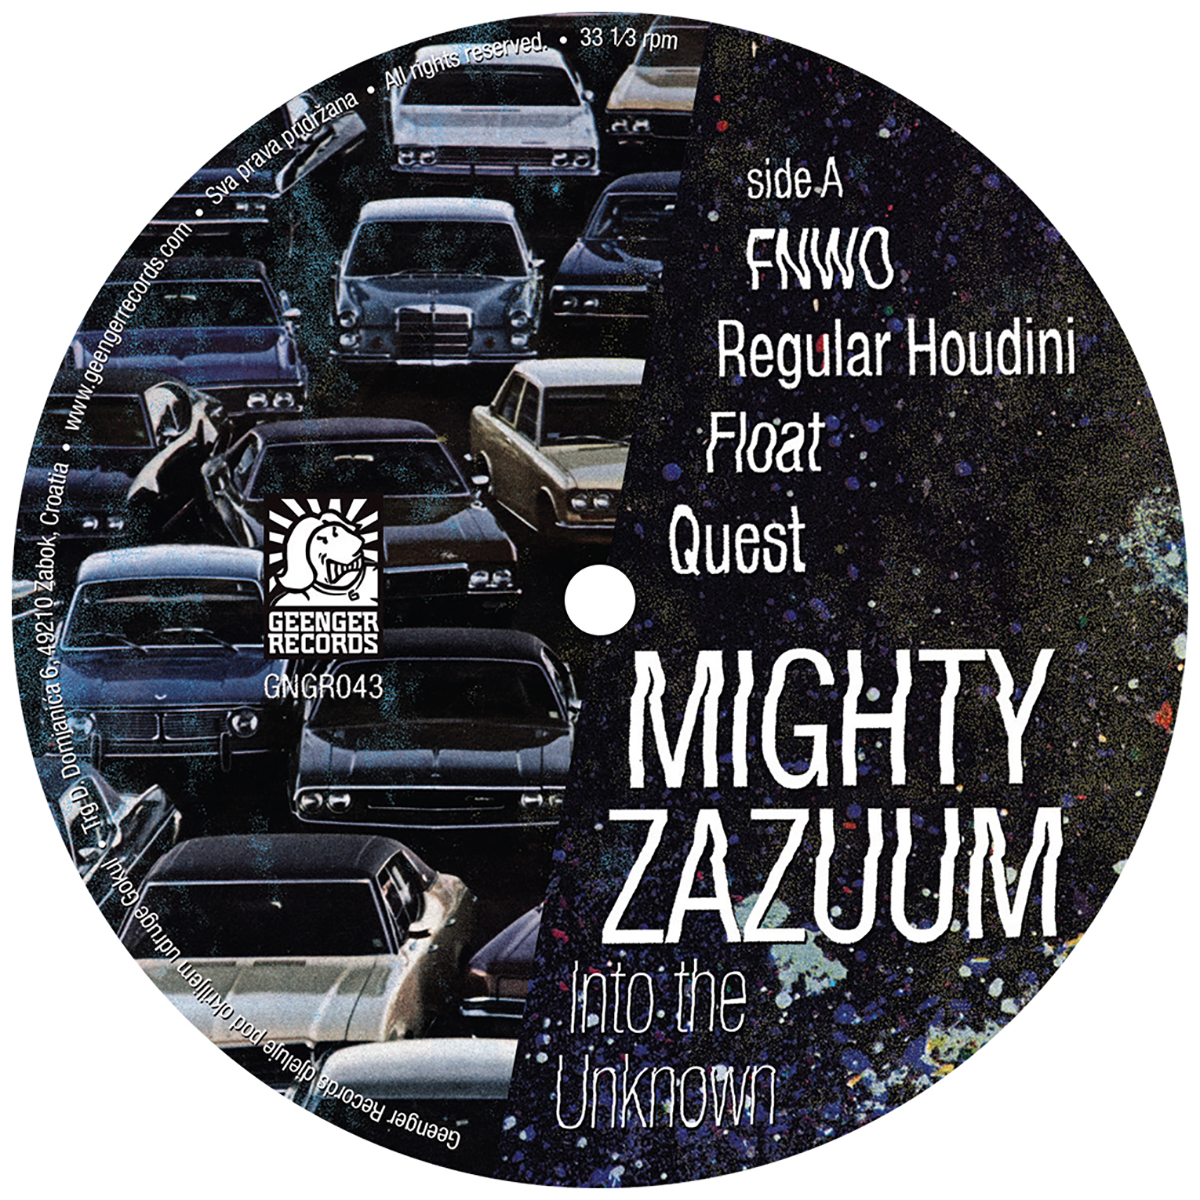 MIGHTY ZAZUUM - Into the Unknown